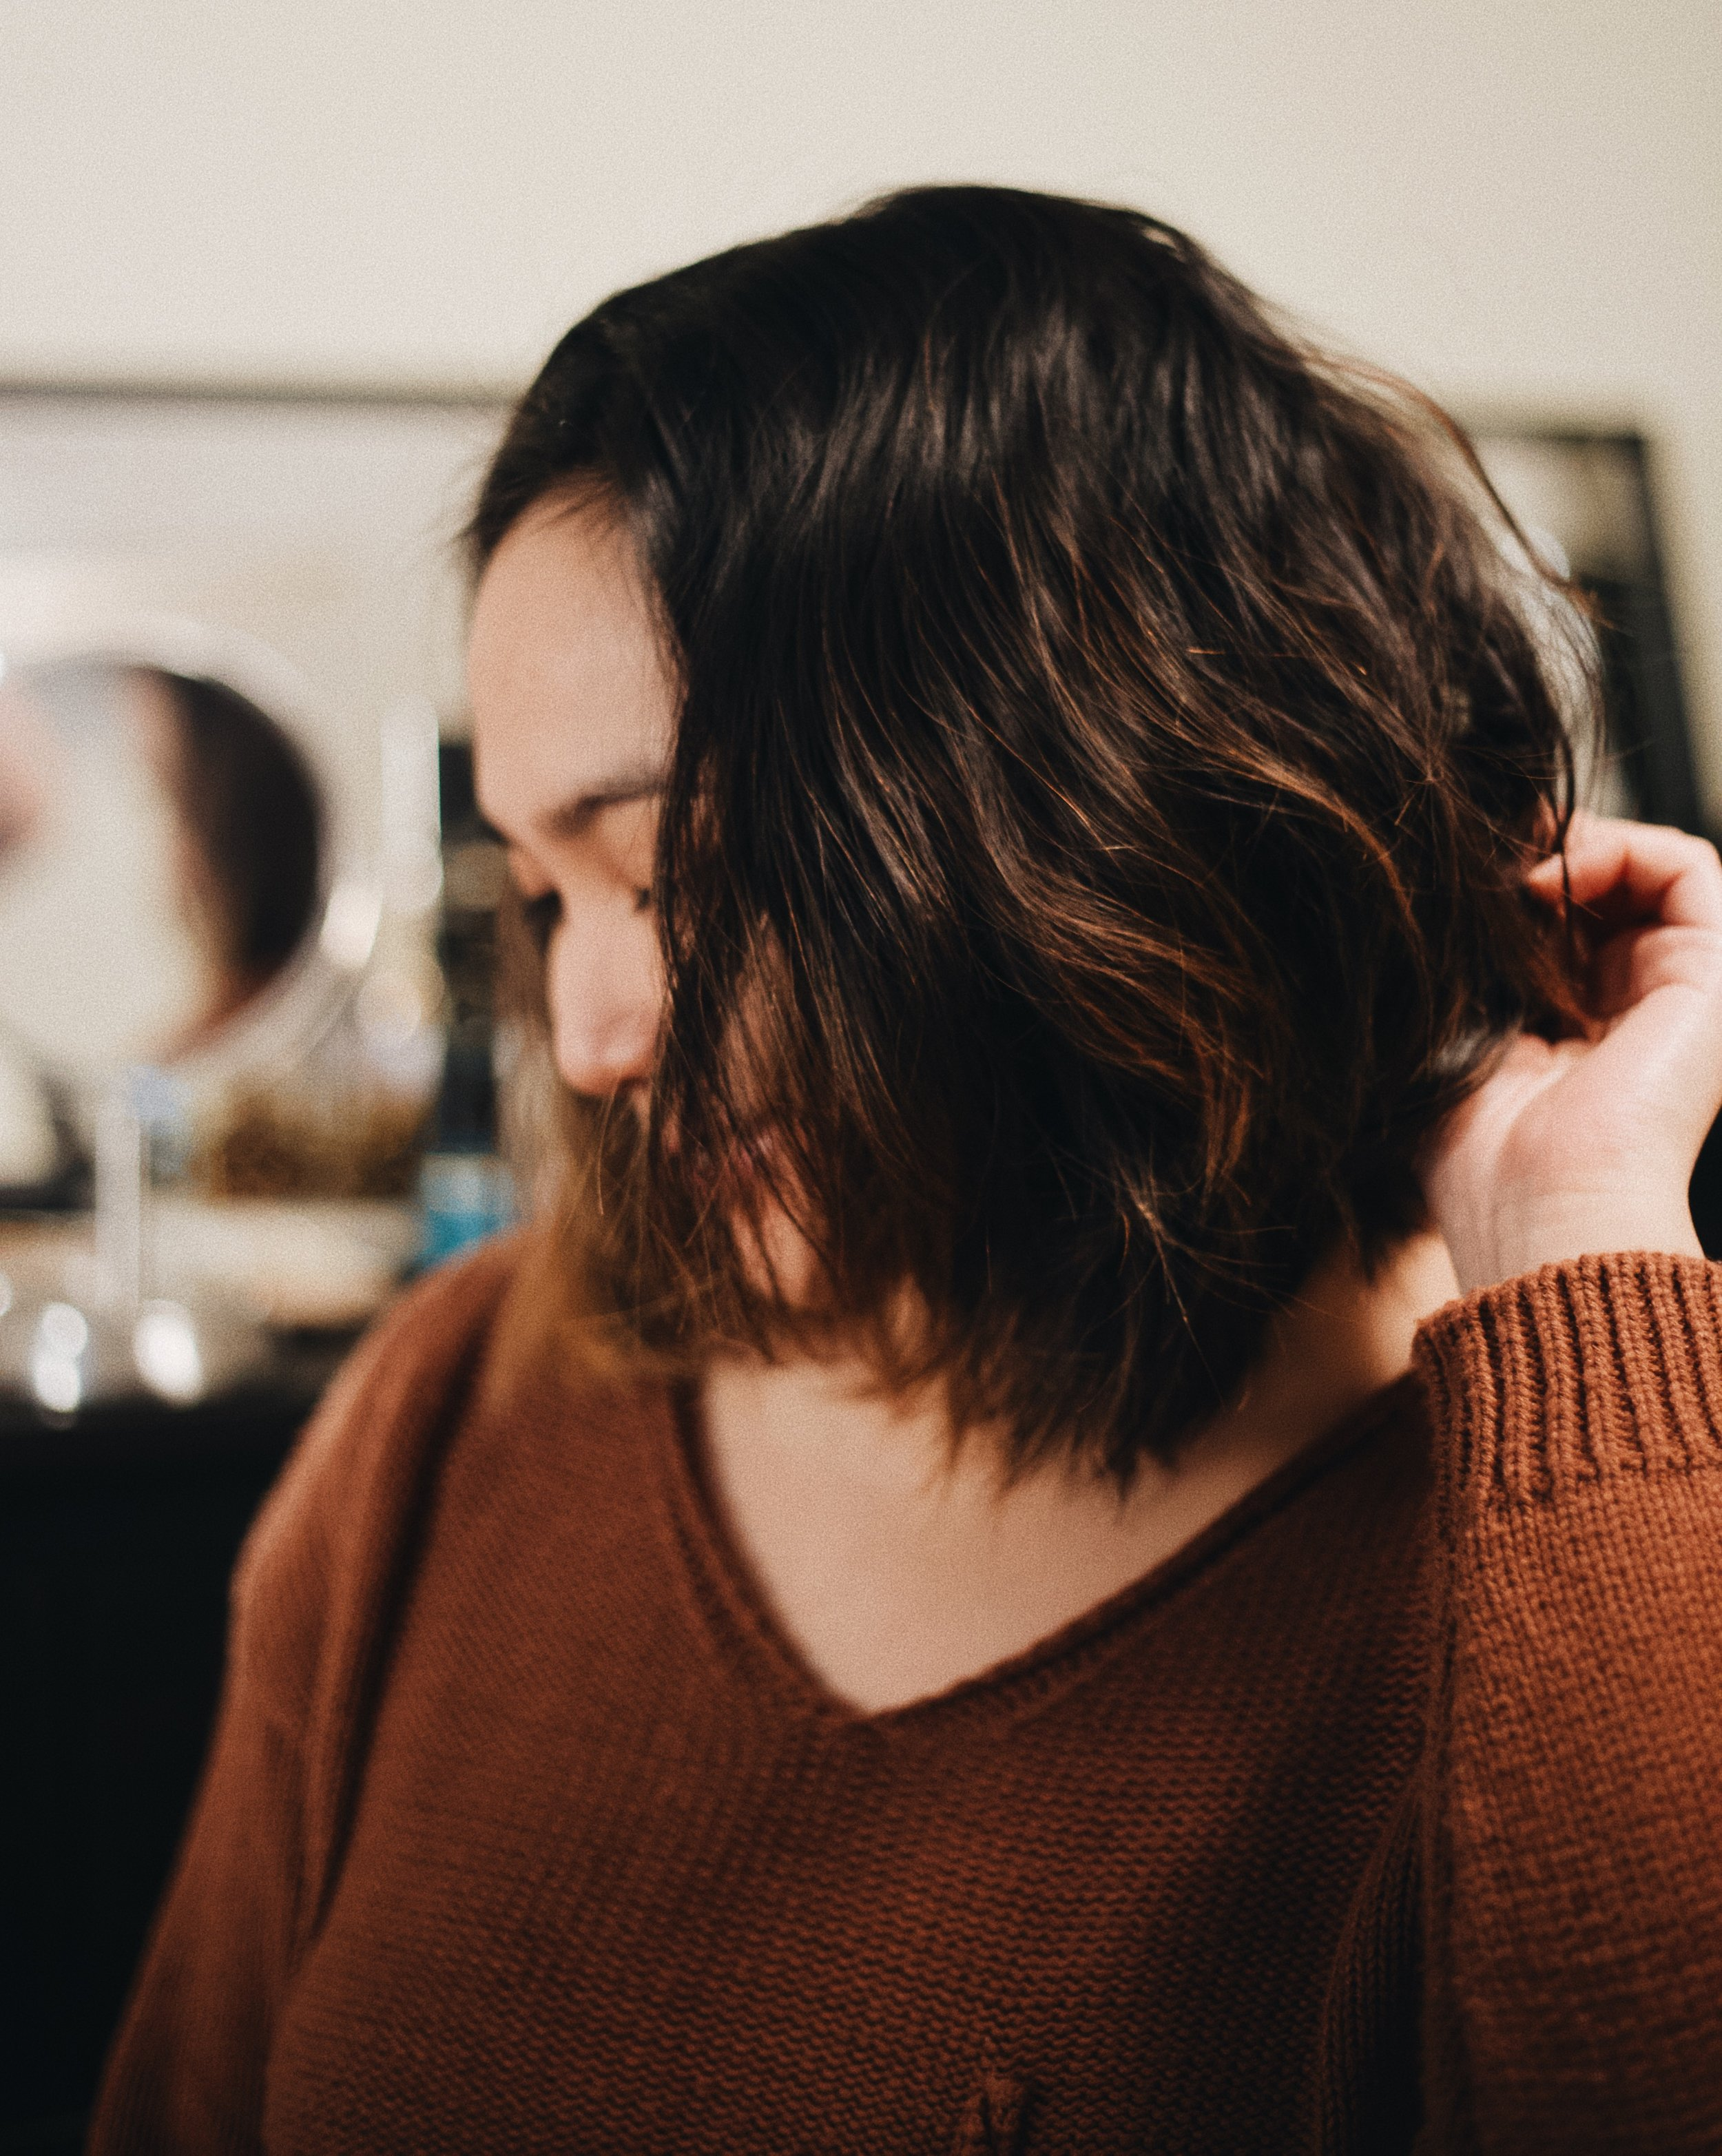 Easy No Heat Messy Waves For Short Hair With Tresemme Corinth Suarez Miami Florida Blogger Influencer